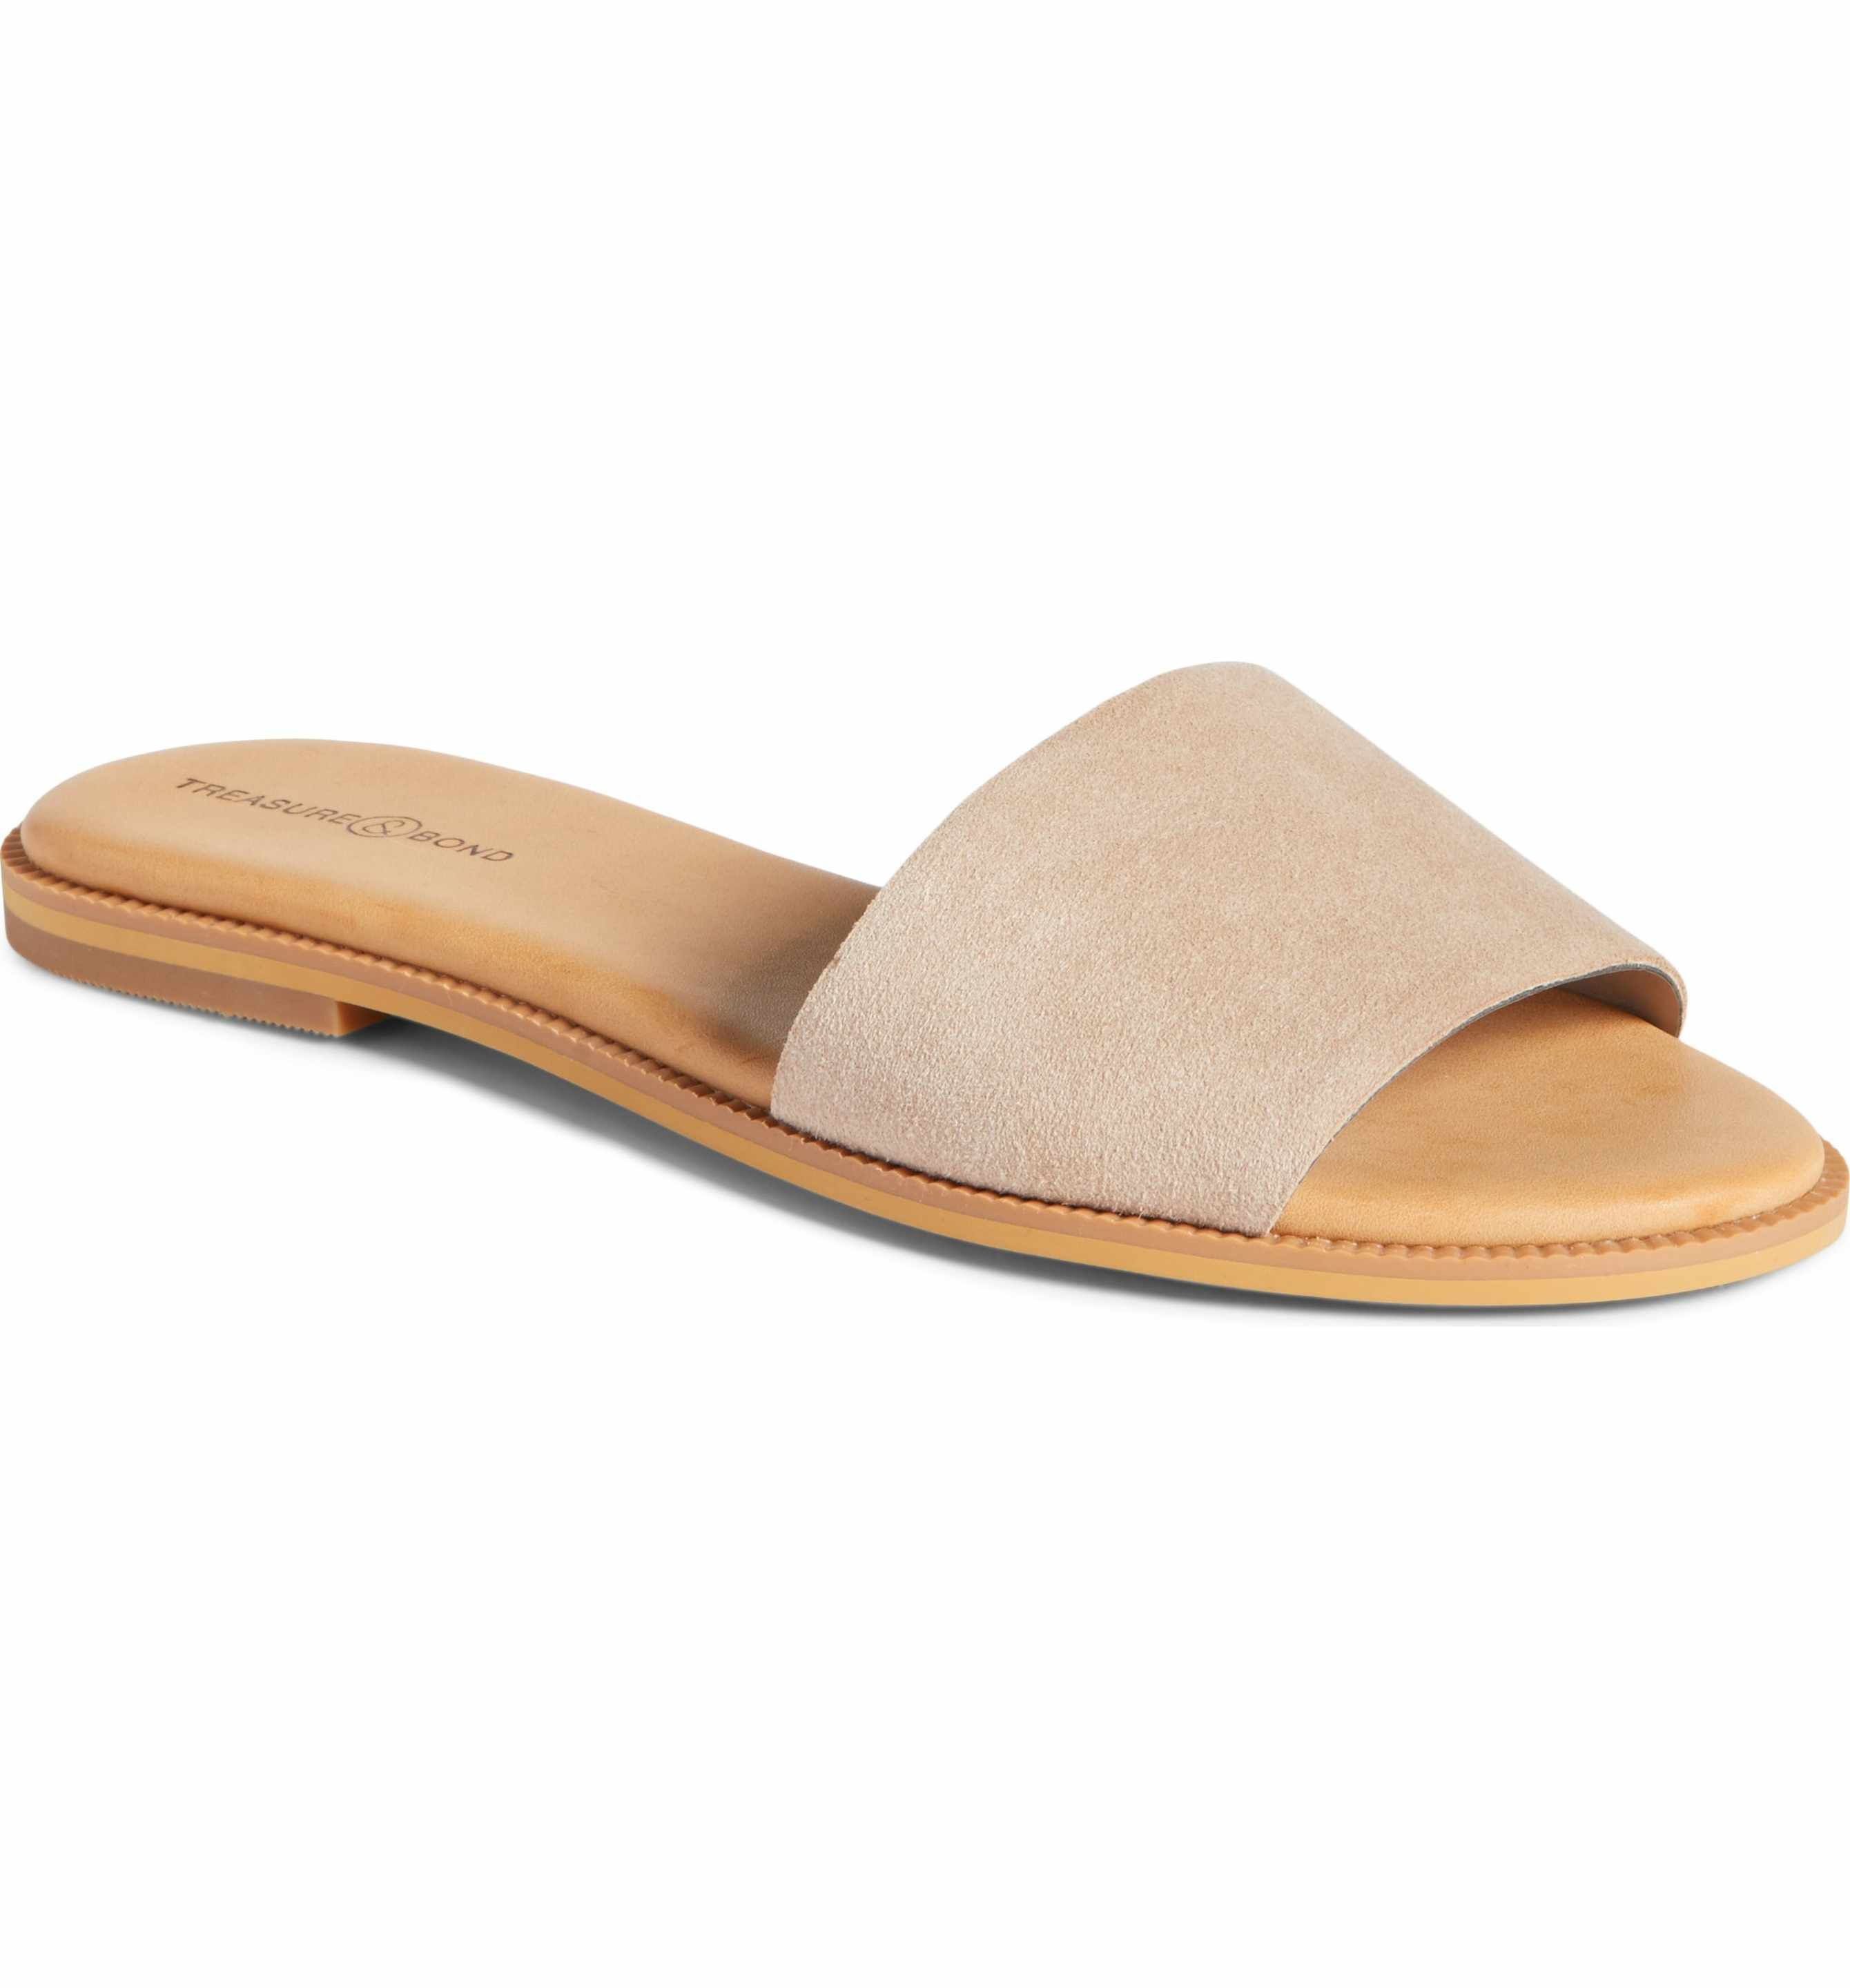 2f598bfbf1e6a Main Image - Treasure   Bond Mere Flat Slide Sandal (Women)